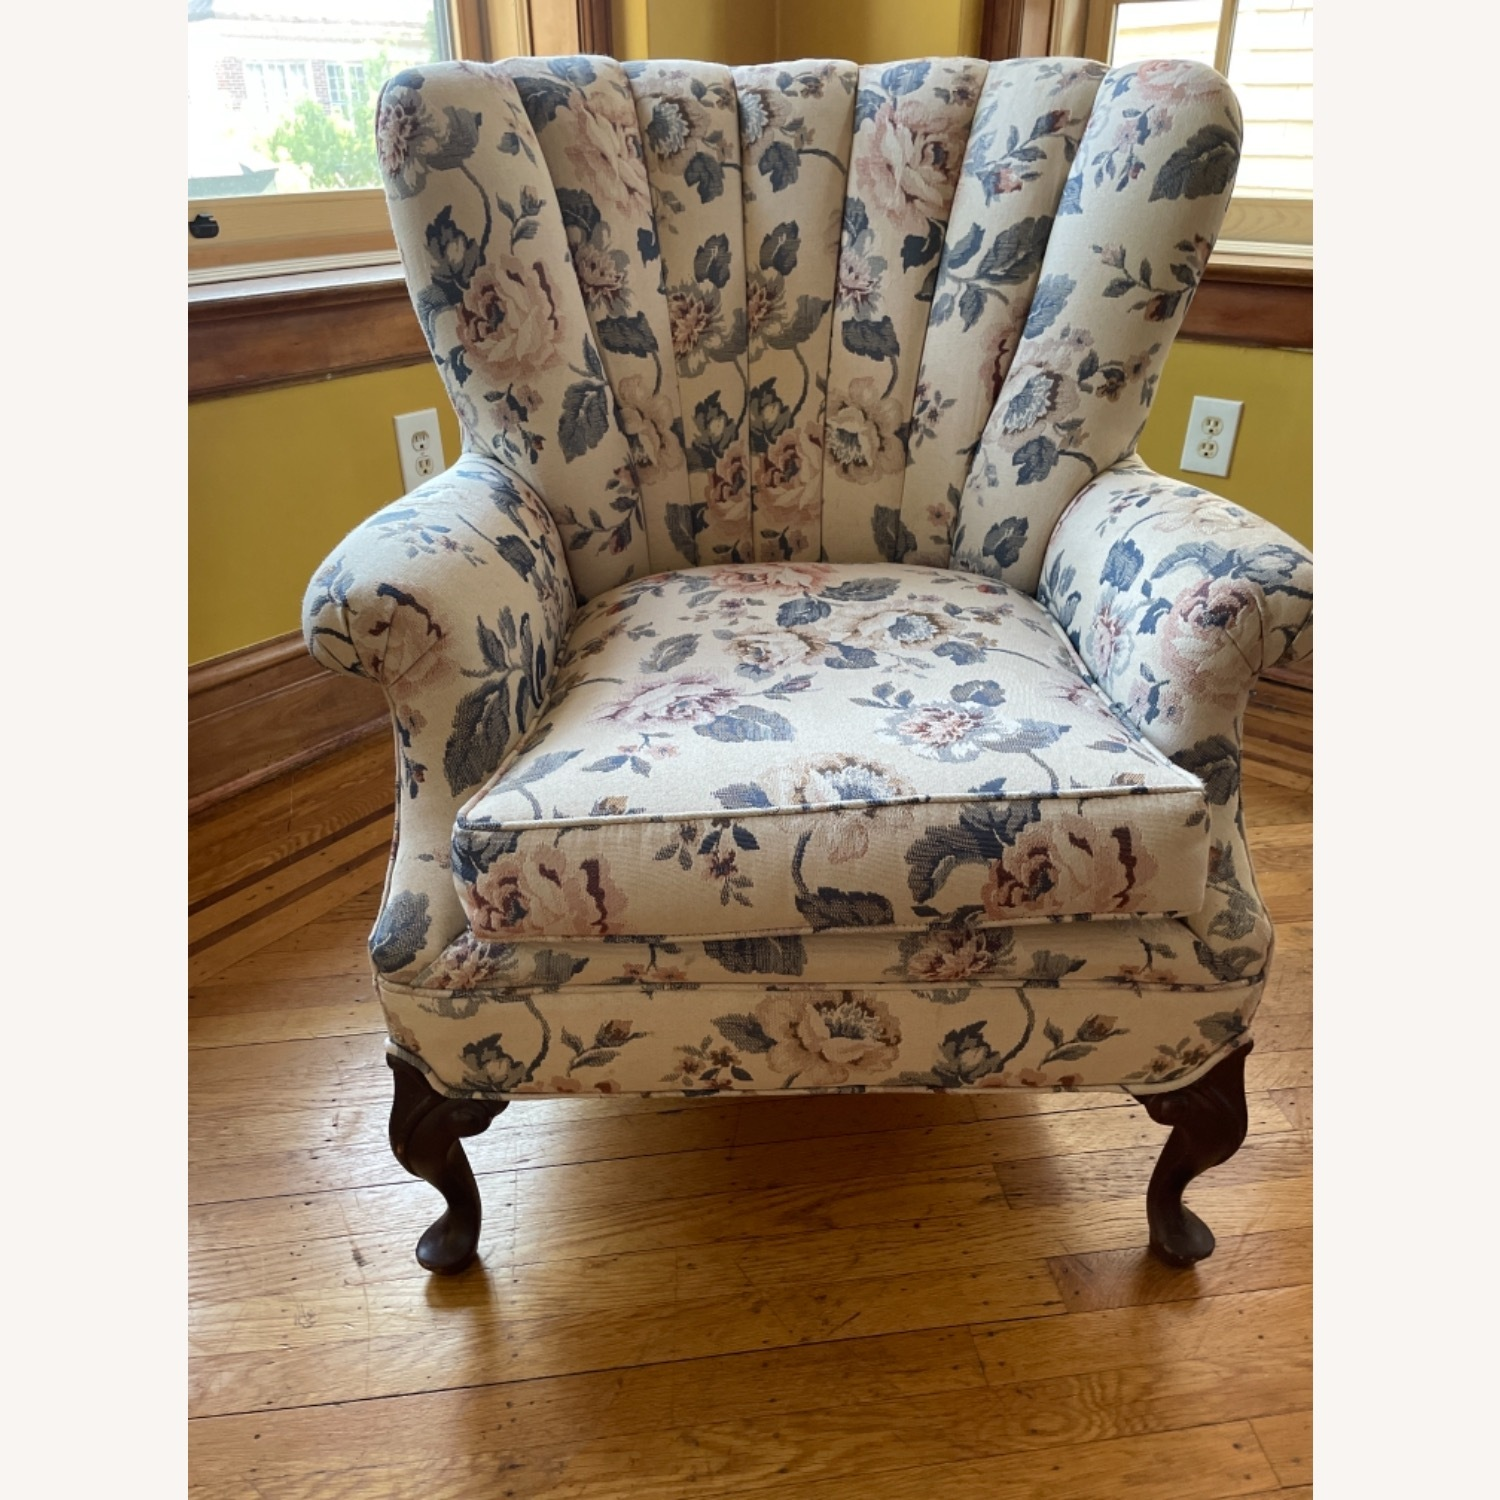 Matching Antique Arm Chairs - image-1